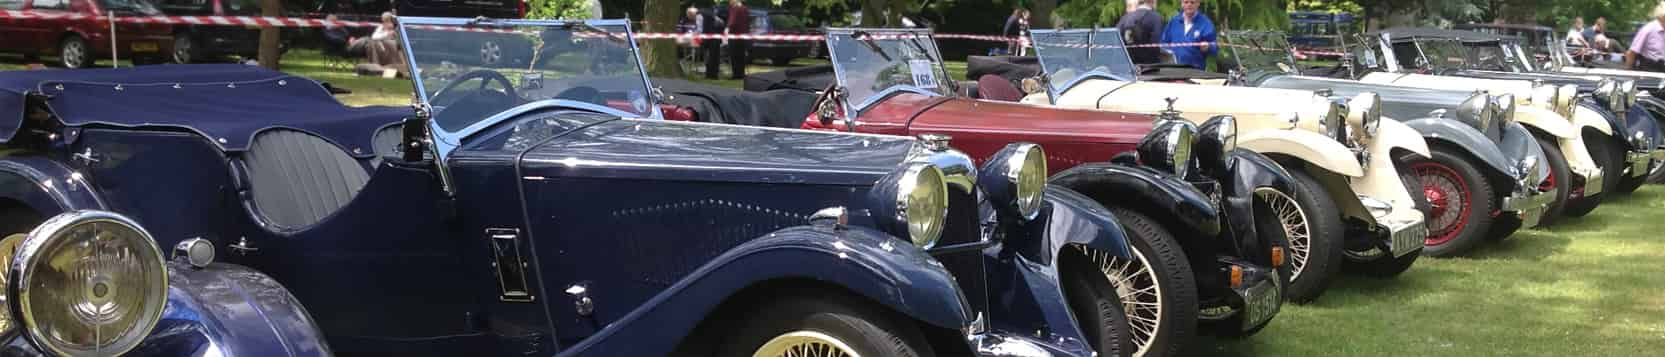 Vintage and Classic Cars for Sale :: Robin Lawton